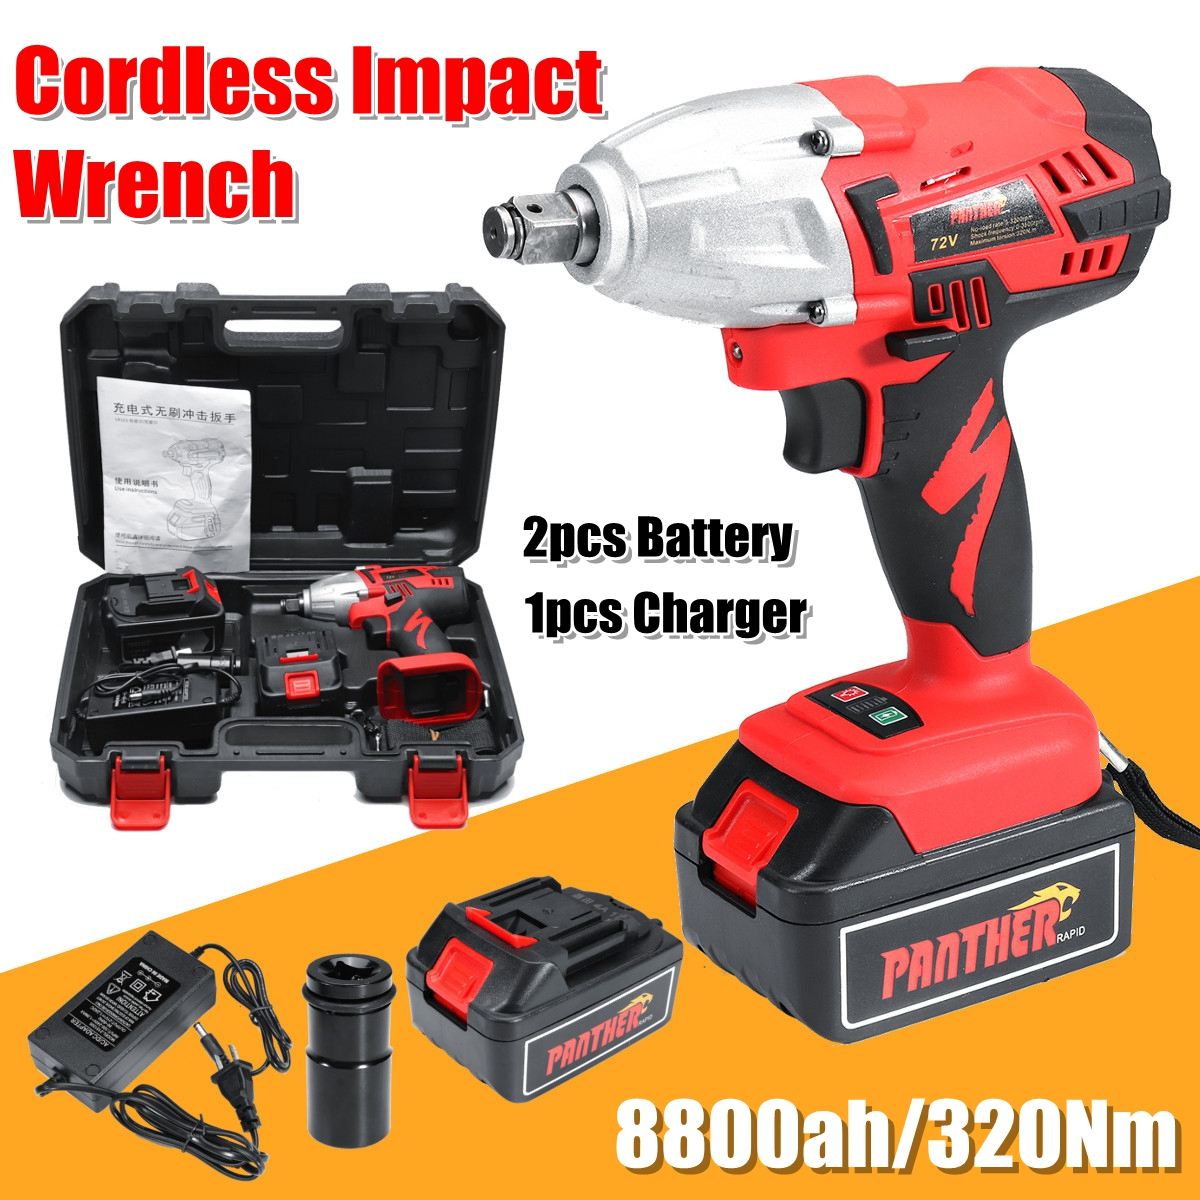 25V 8800Ah Li ion Electric Impact Wrench 320Nm High Torque Impact Wrench Cordless 1/2 Batteries 1 Charger Power Tool